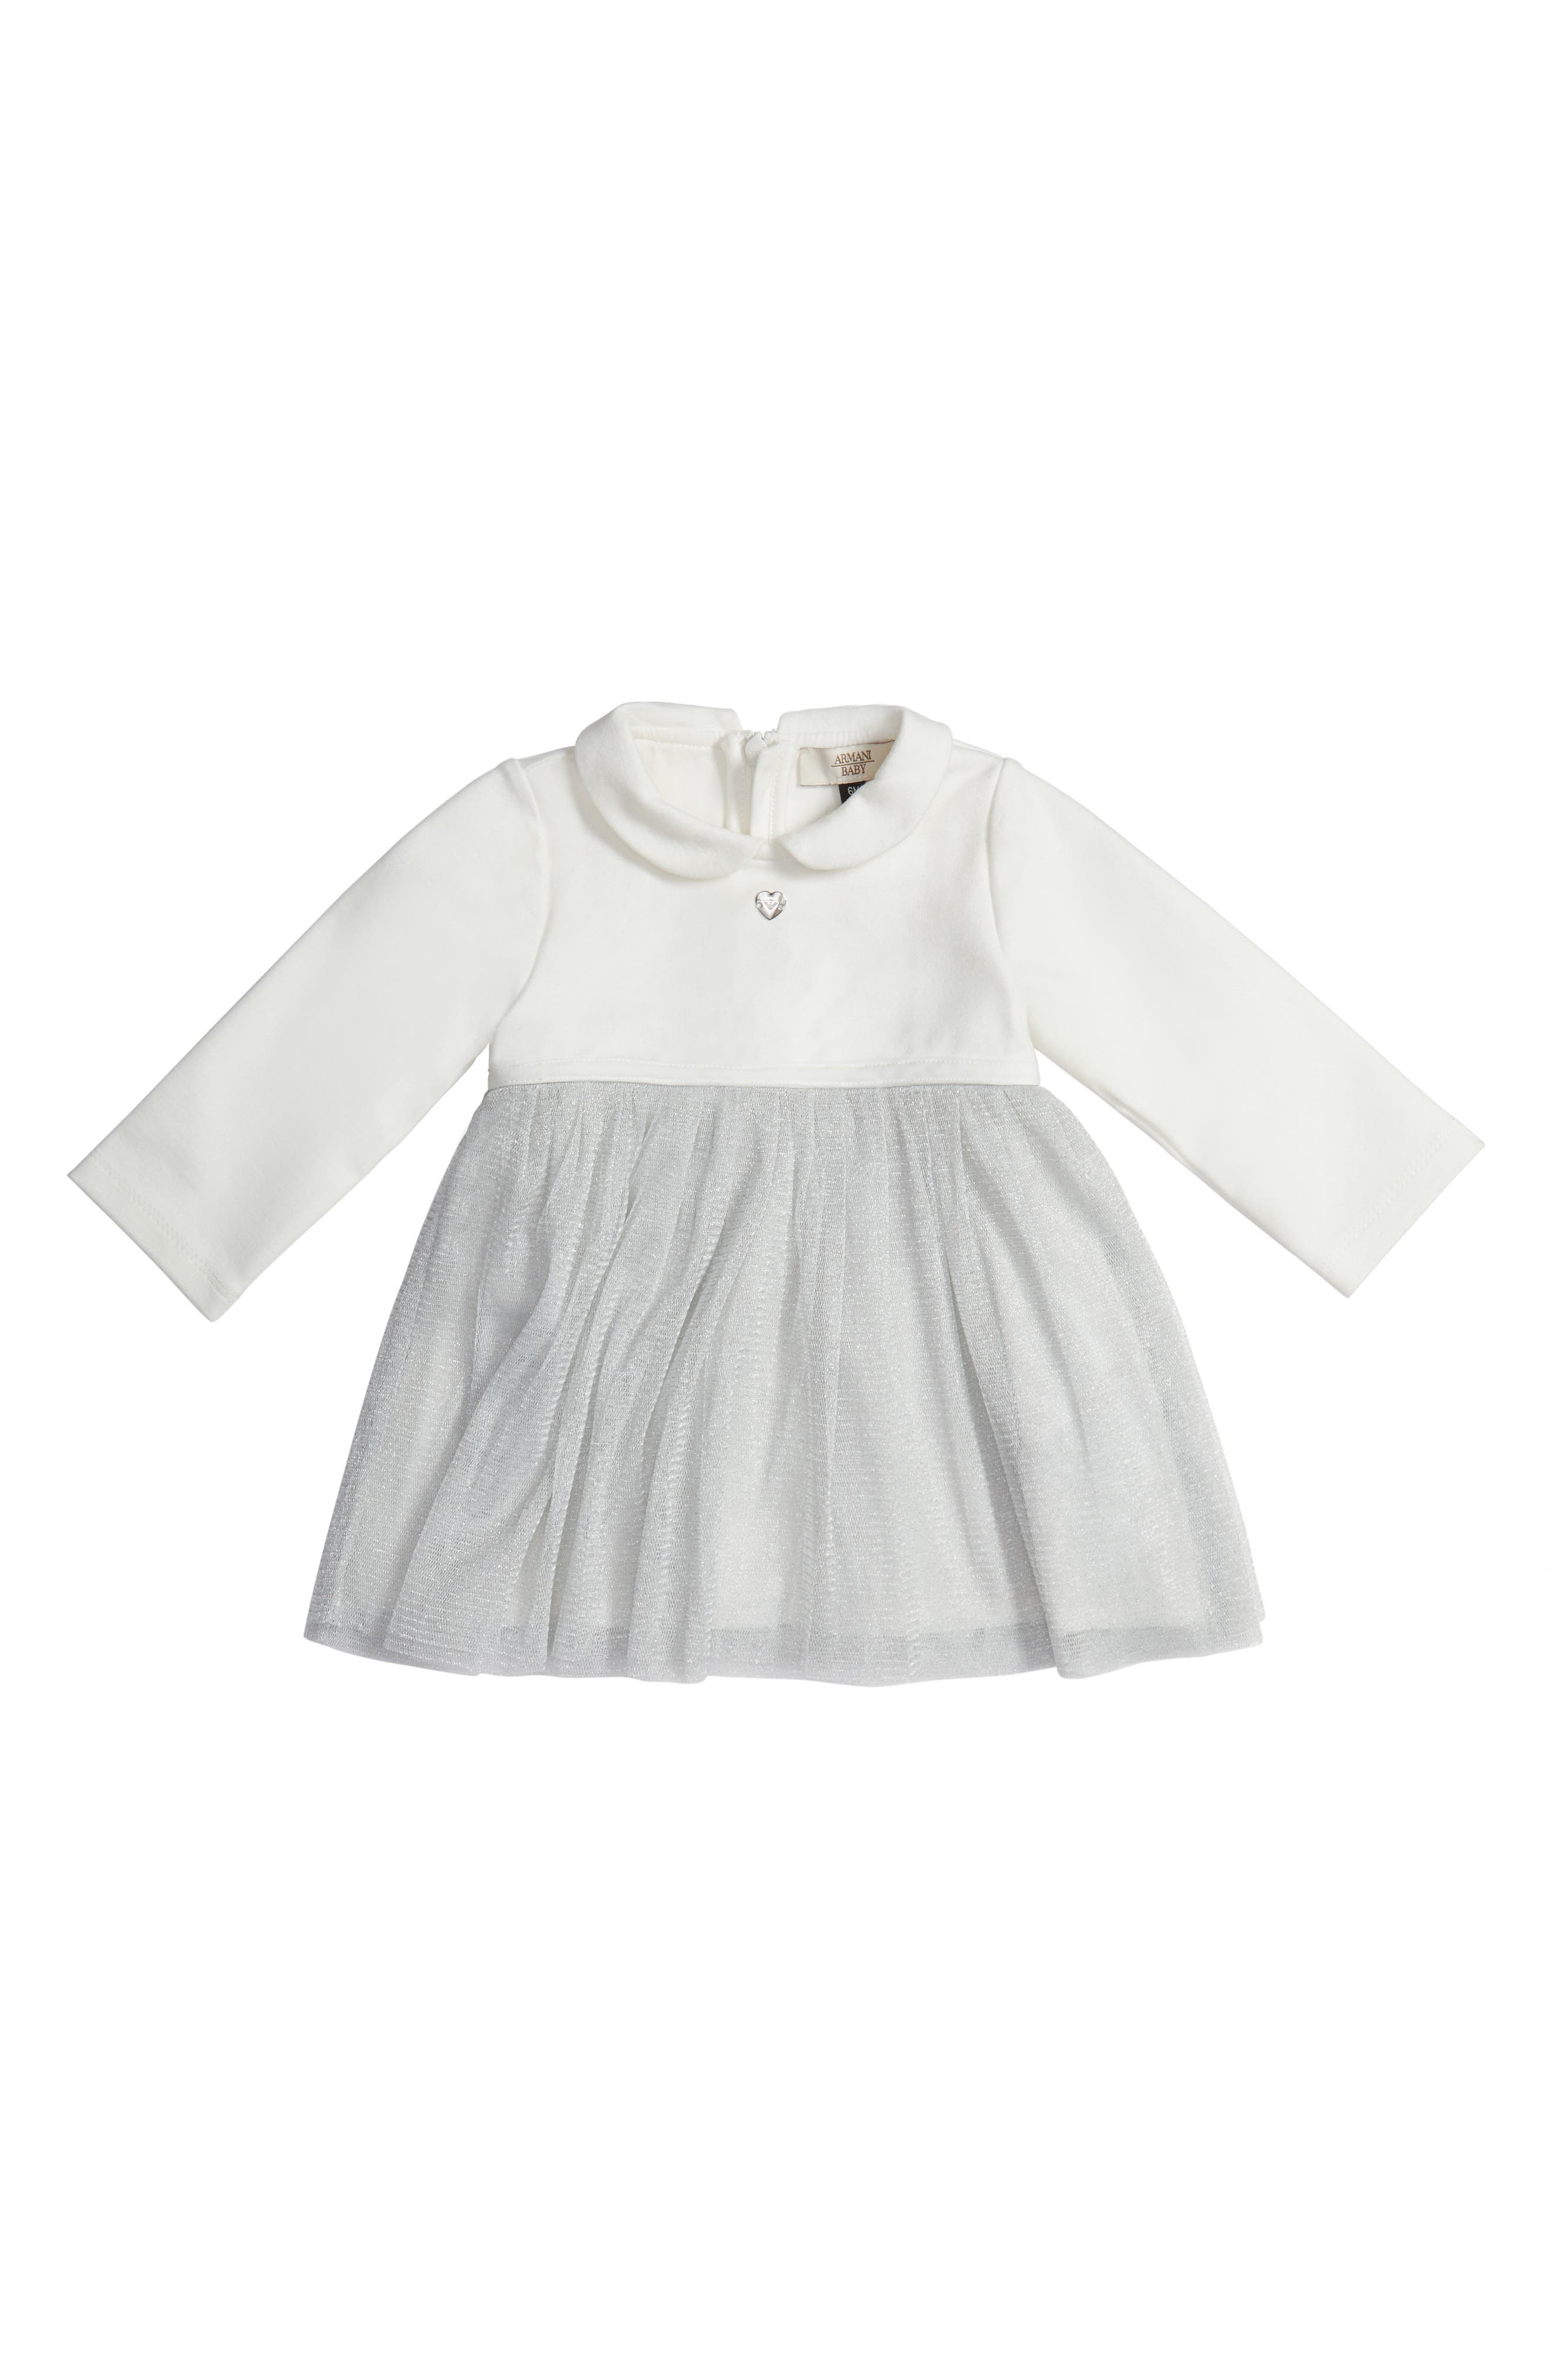 Alternate Image 1 Selected - Armani Junior Jersey & Tulle Dress (Baby Girls)